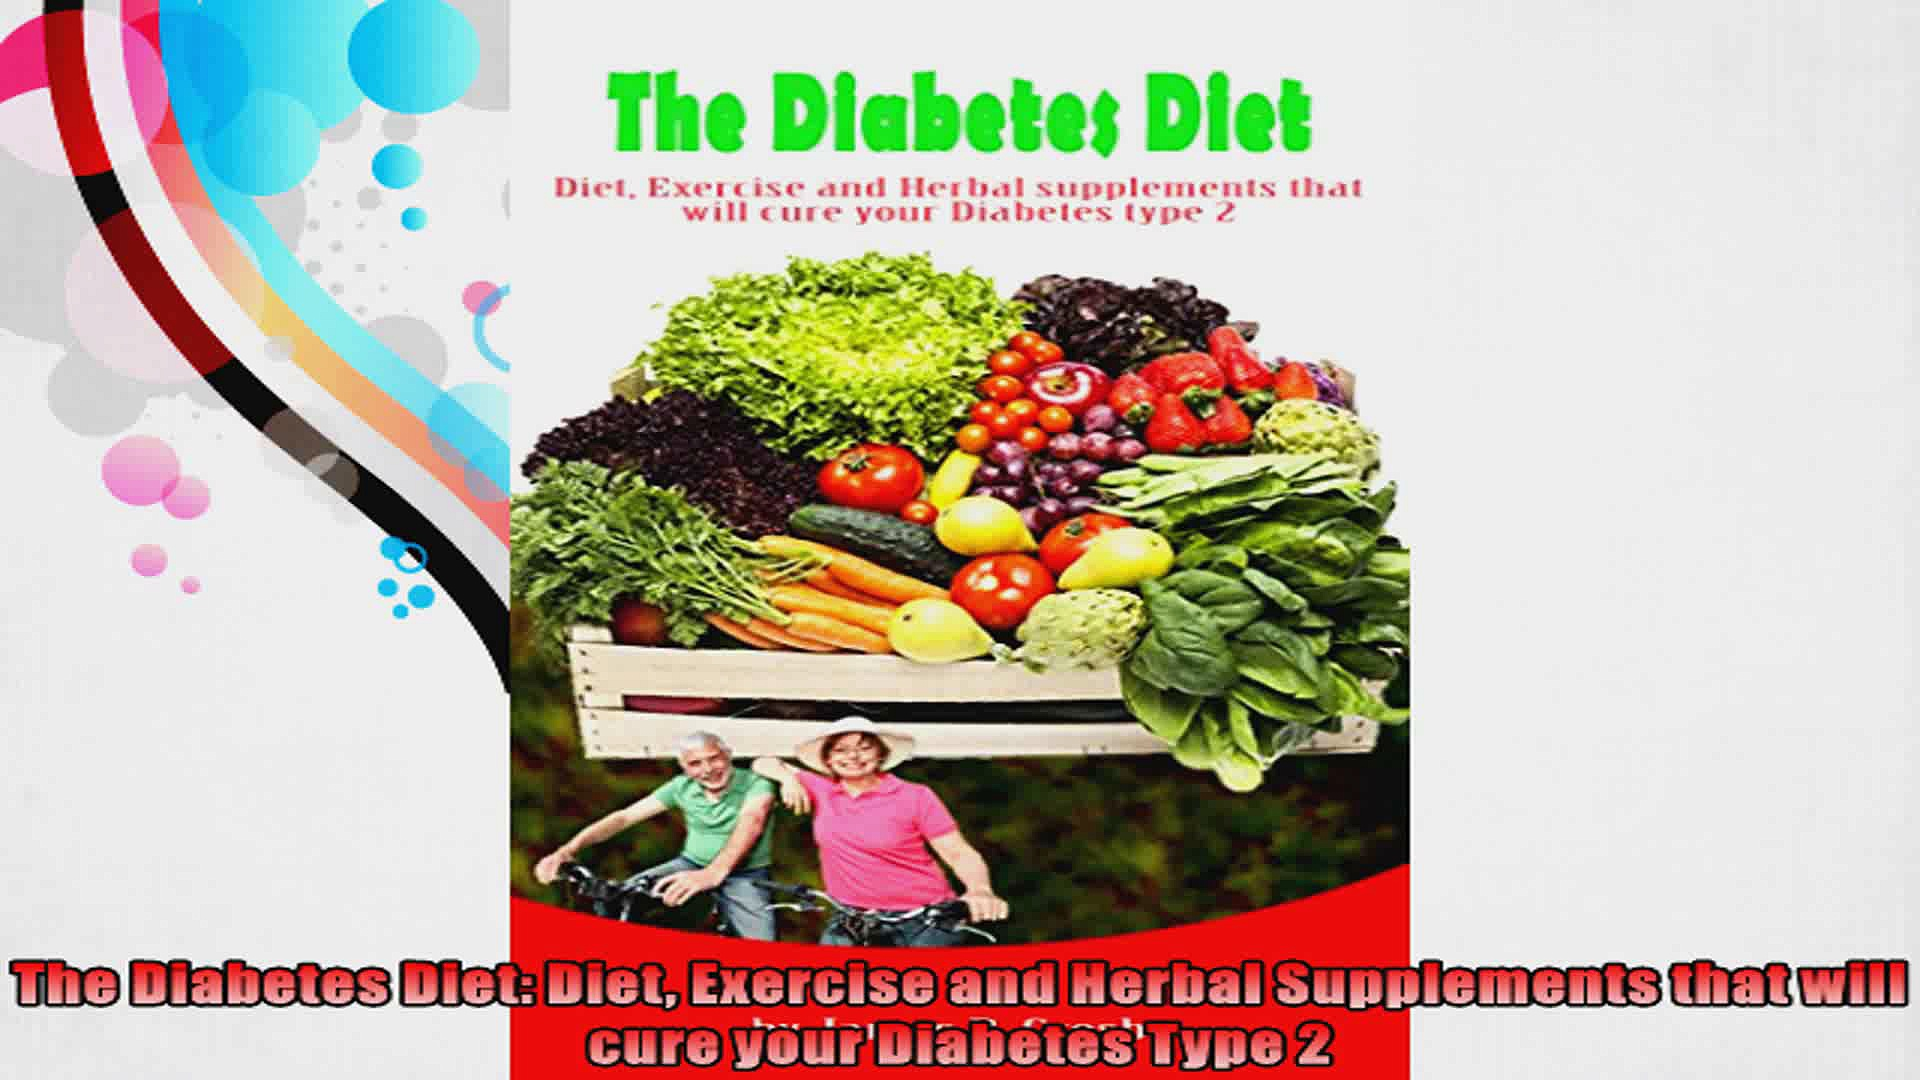 The Diabetes Diet Diet Exercise and Herbal Supplements that will cure your Diabetes Type